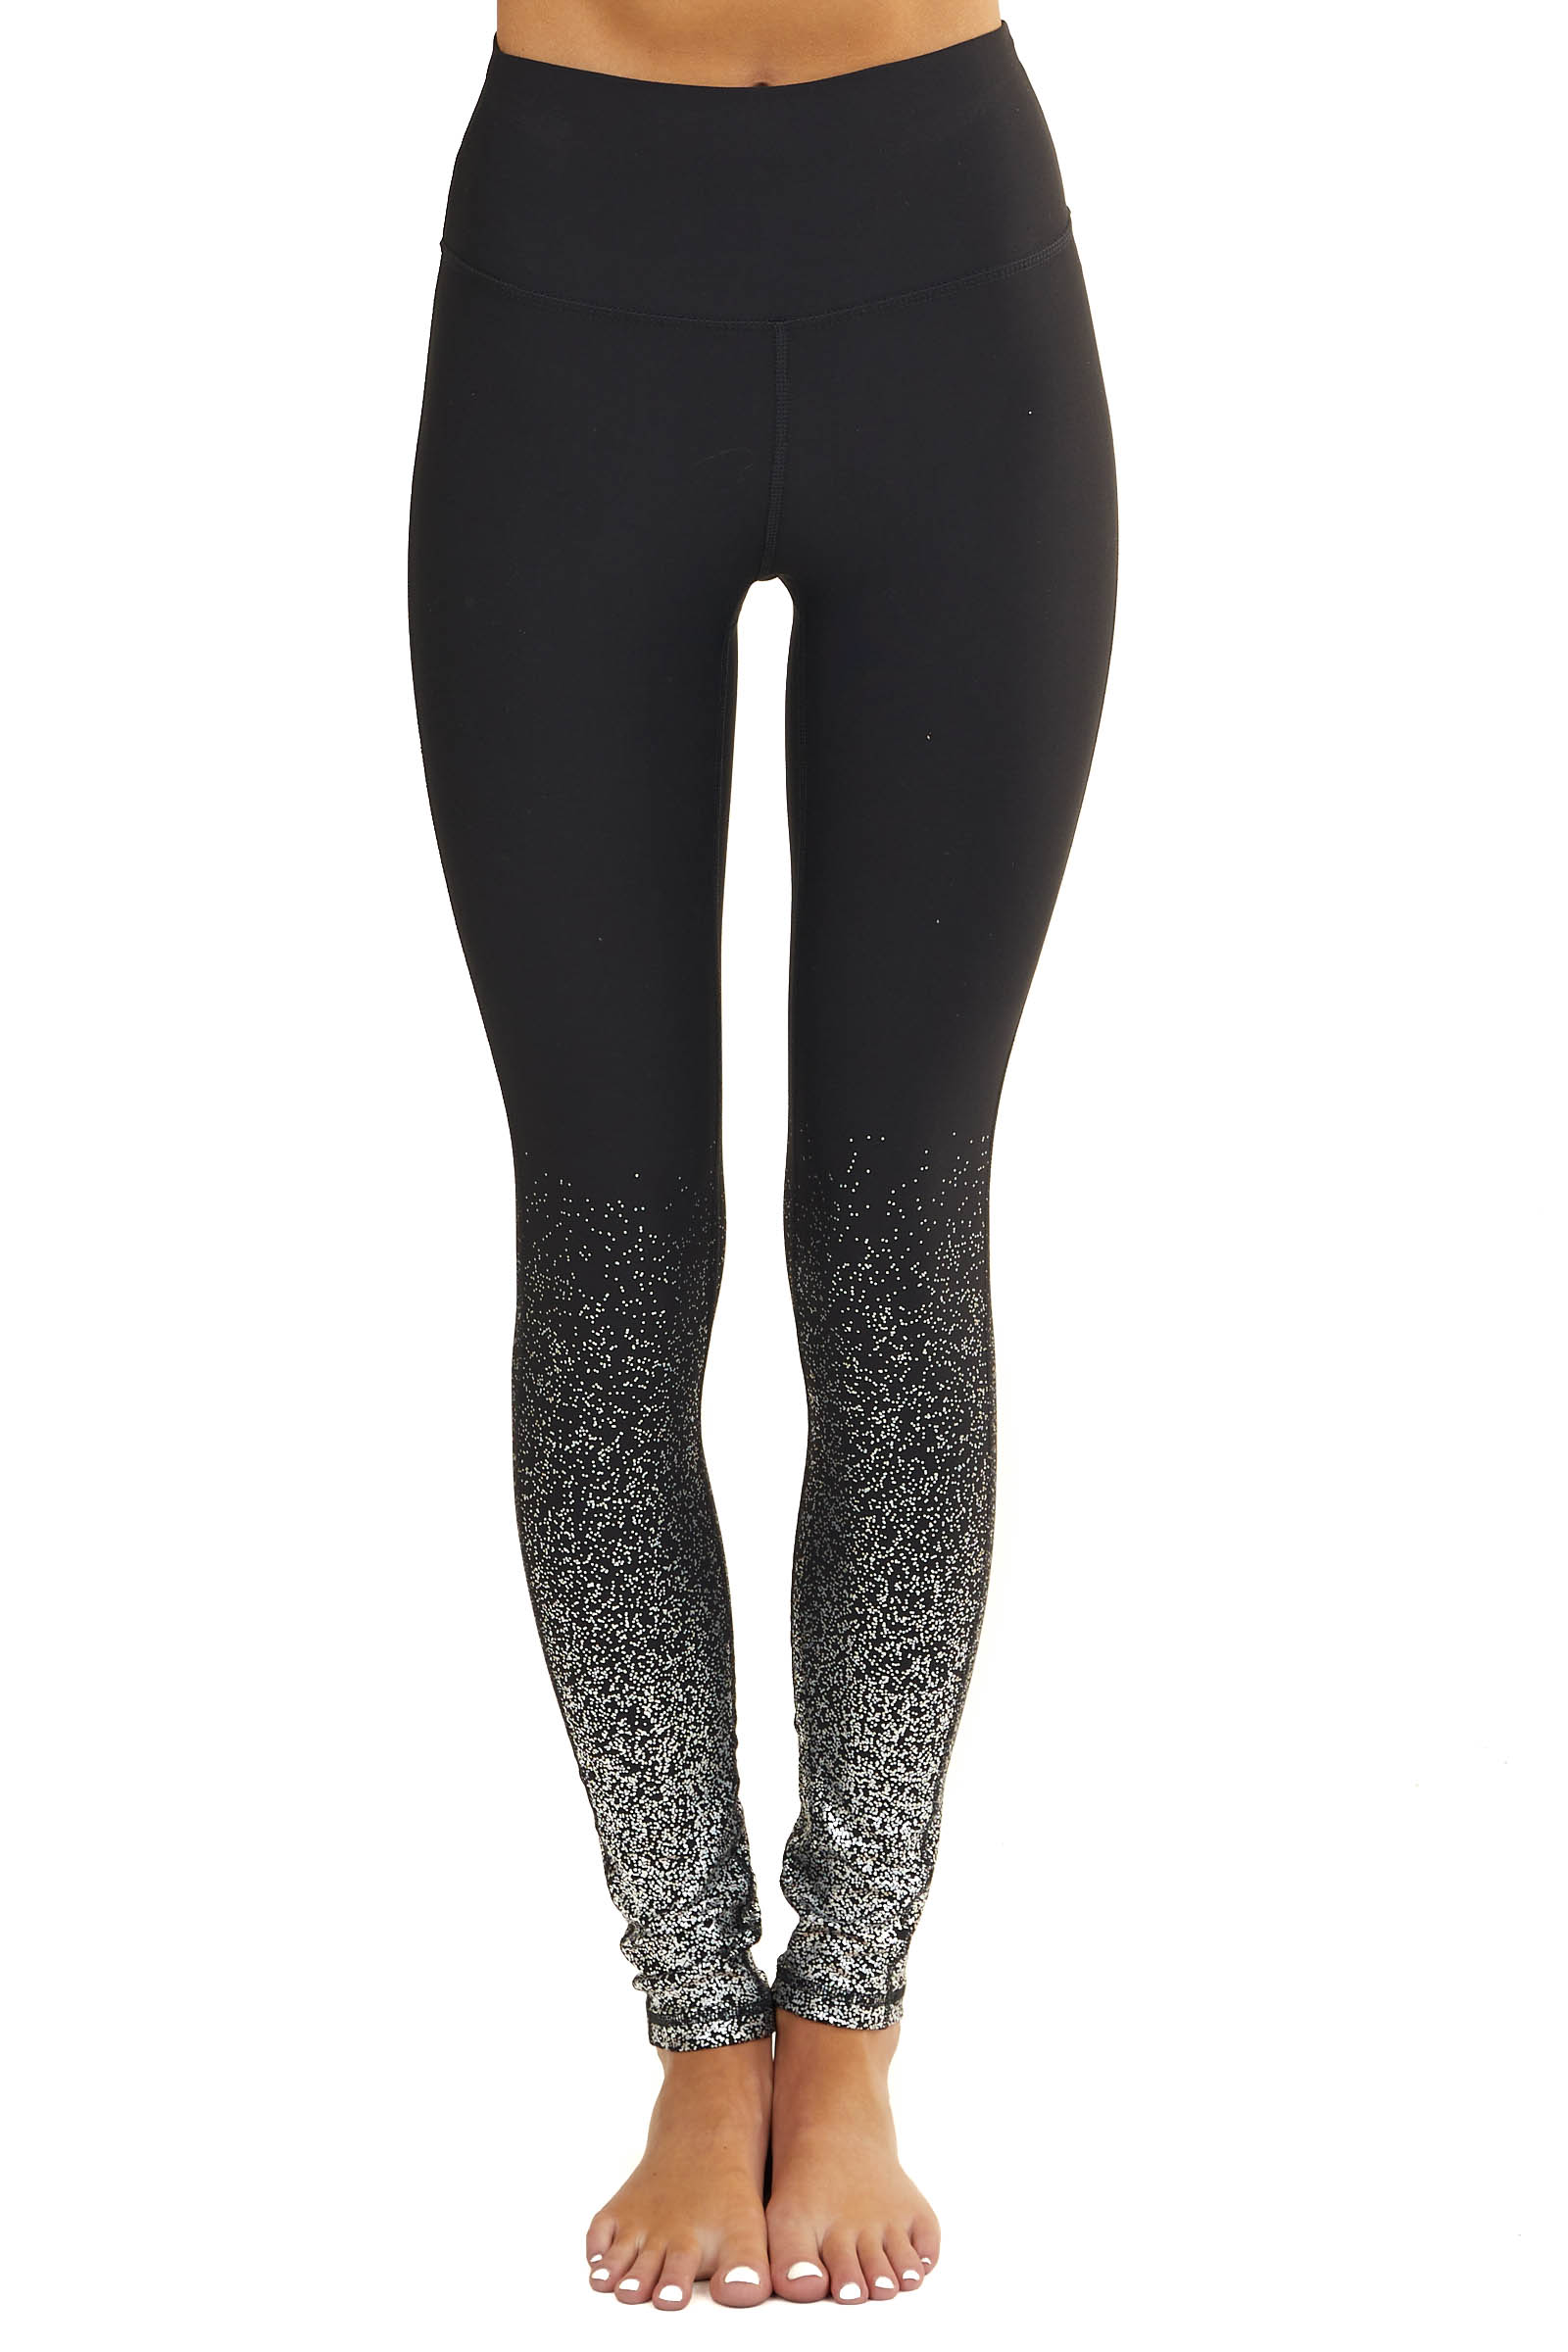 Black Knit Leggings with Silver Metallic Dot Detail